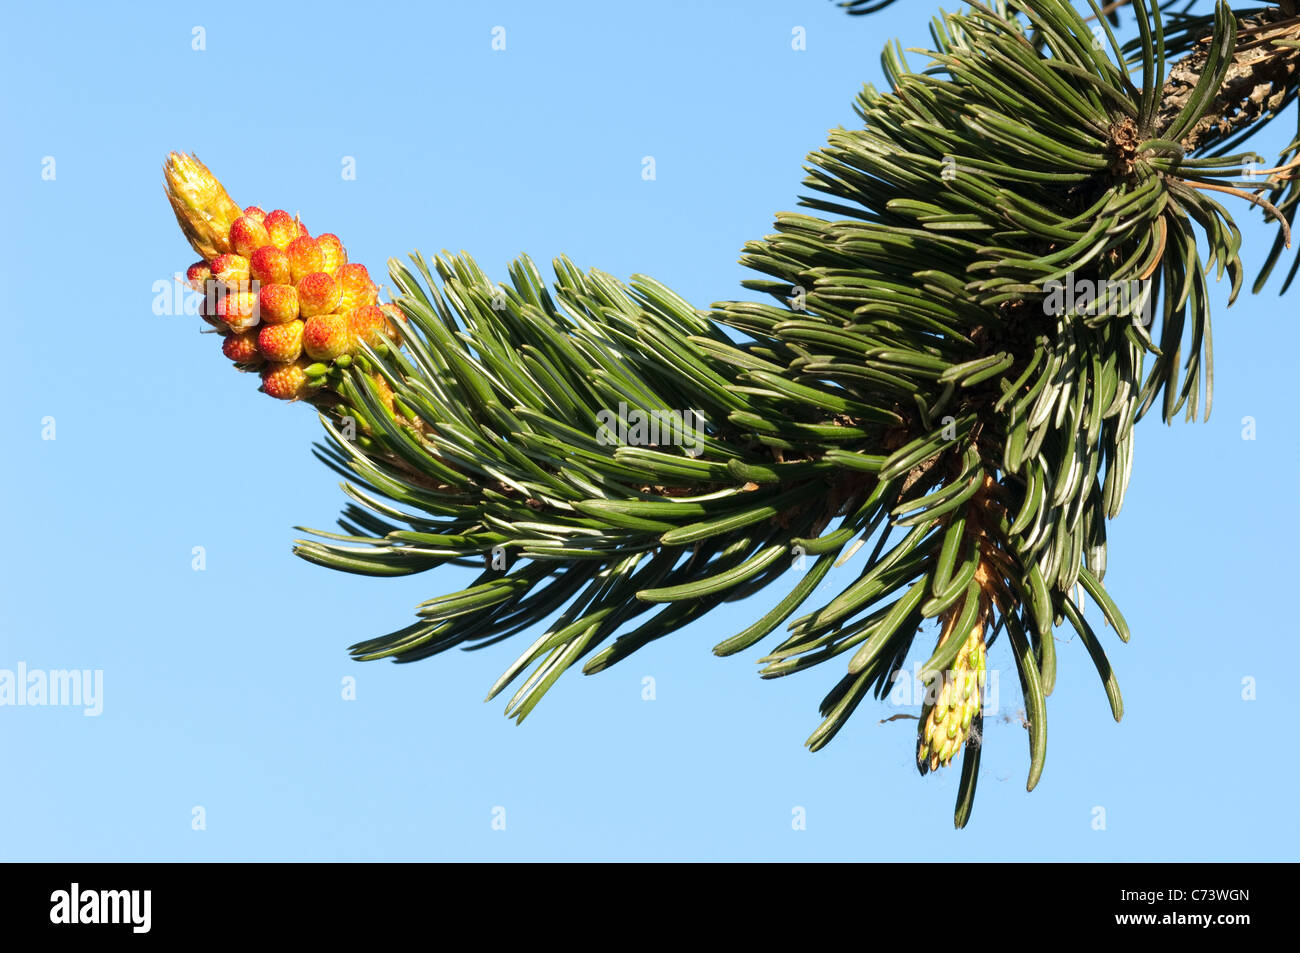 Great Basin Bristlecone Pine (Pinus longaeva), twig with flowers. - Stock Image